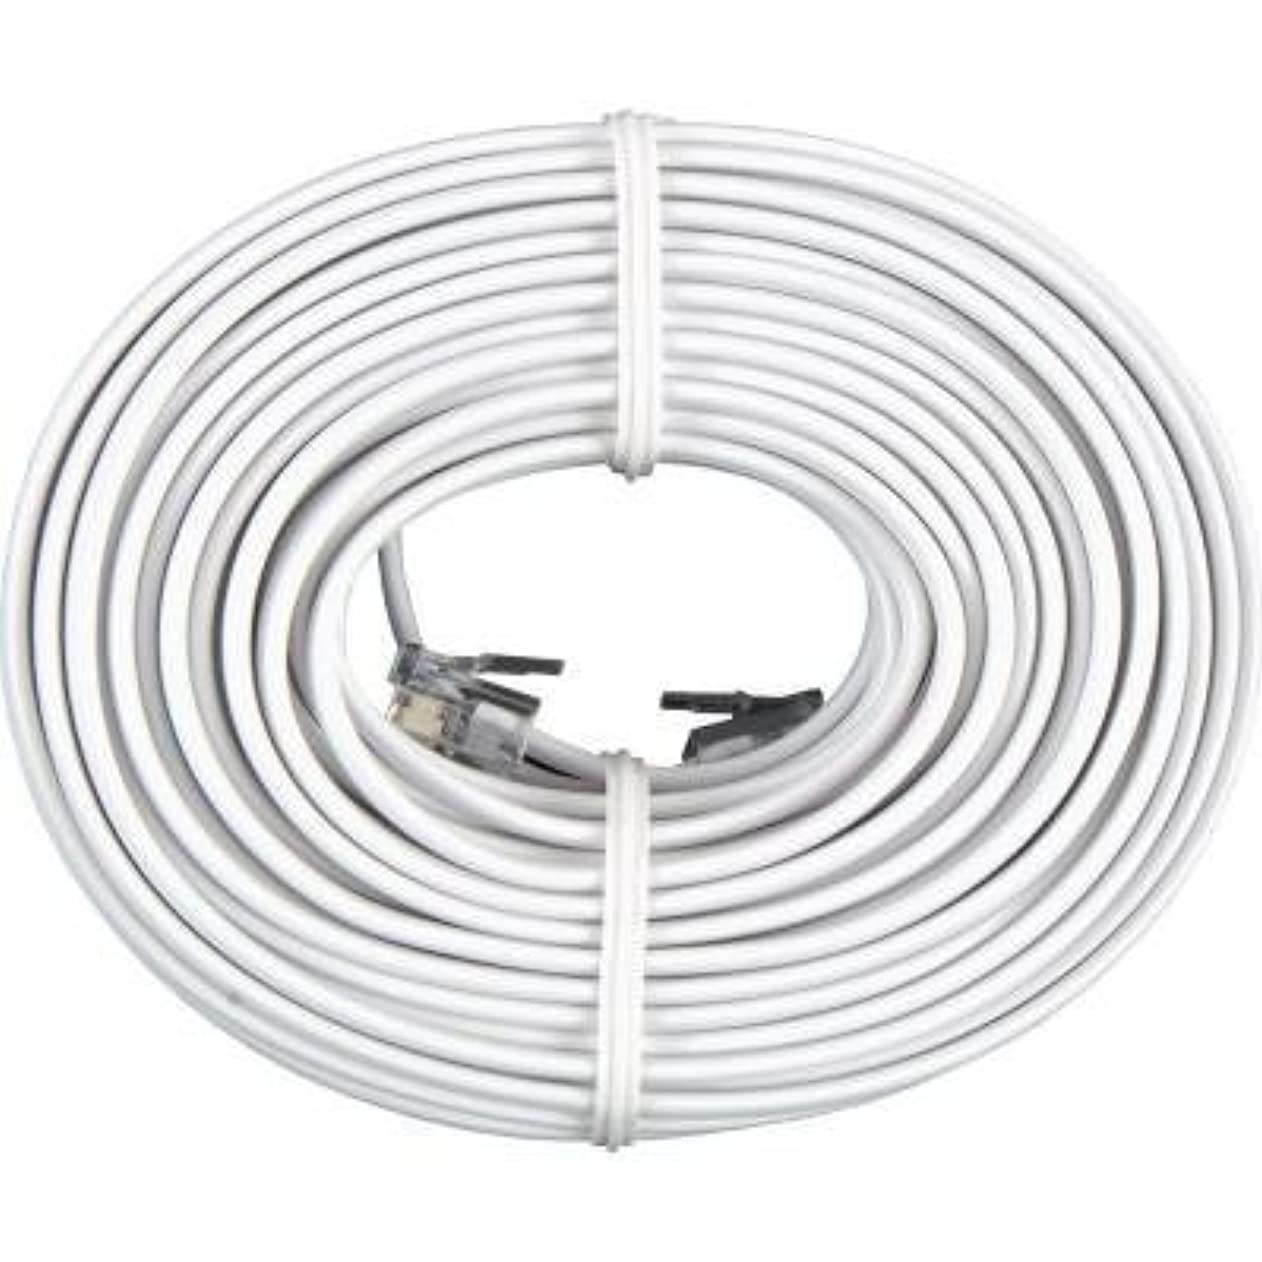 Permo 50 Feet White Telephone Extension Cord Cable Line Wire boeeqeehzag47731